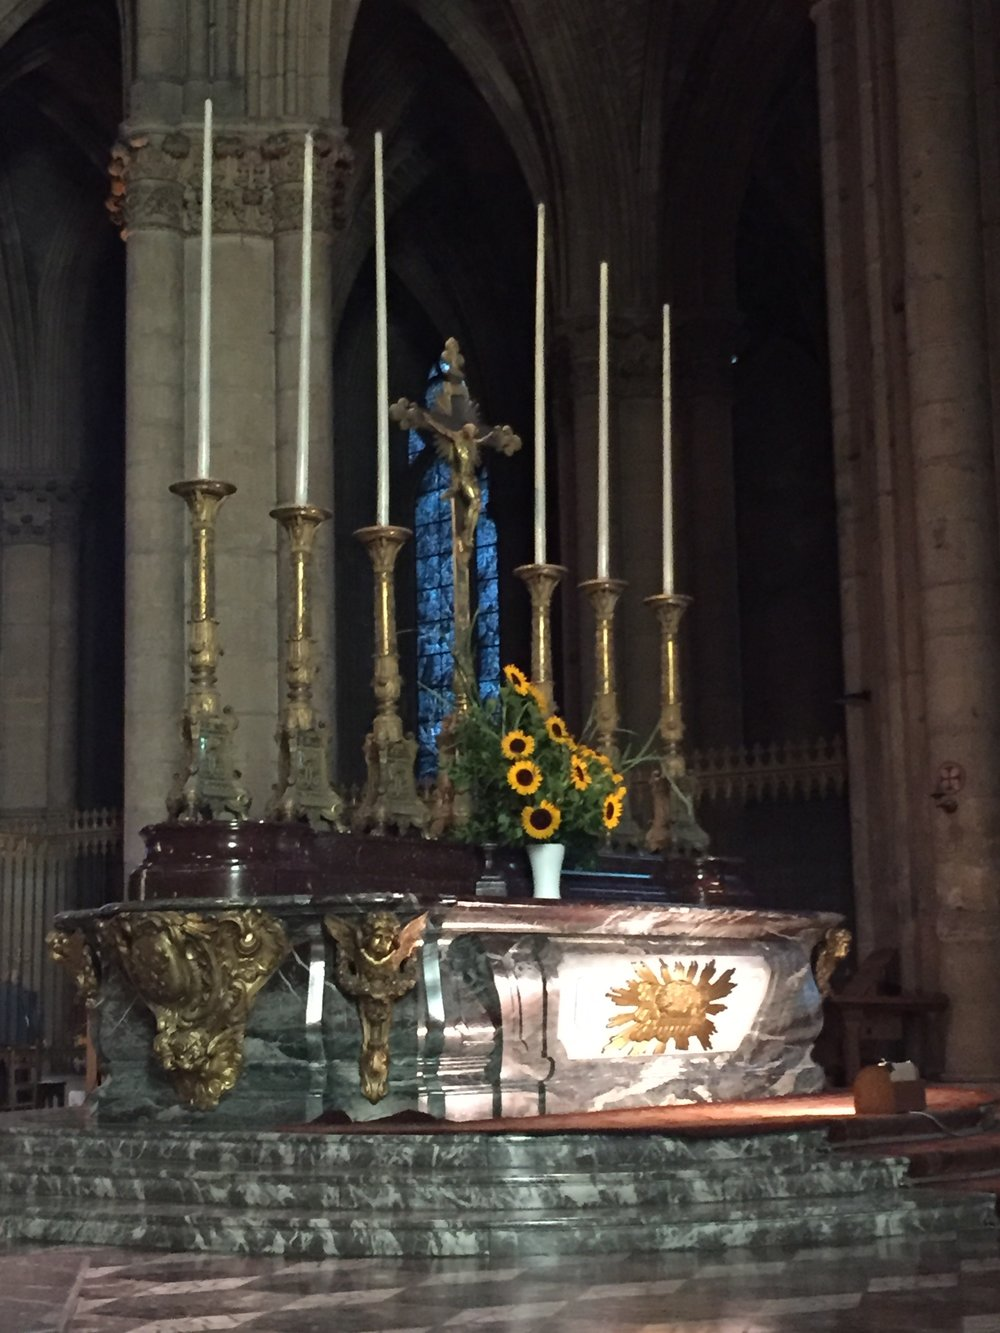 I've never seen sunflowers in a church, until we went to the Reims cathedral a few weeks ago for a beautiful mass and there she was, Olivia saying hello.